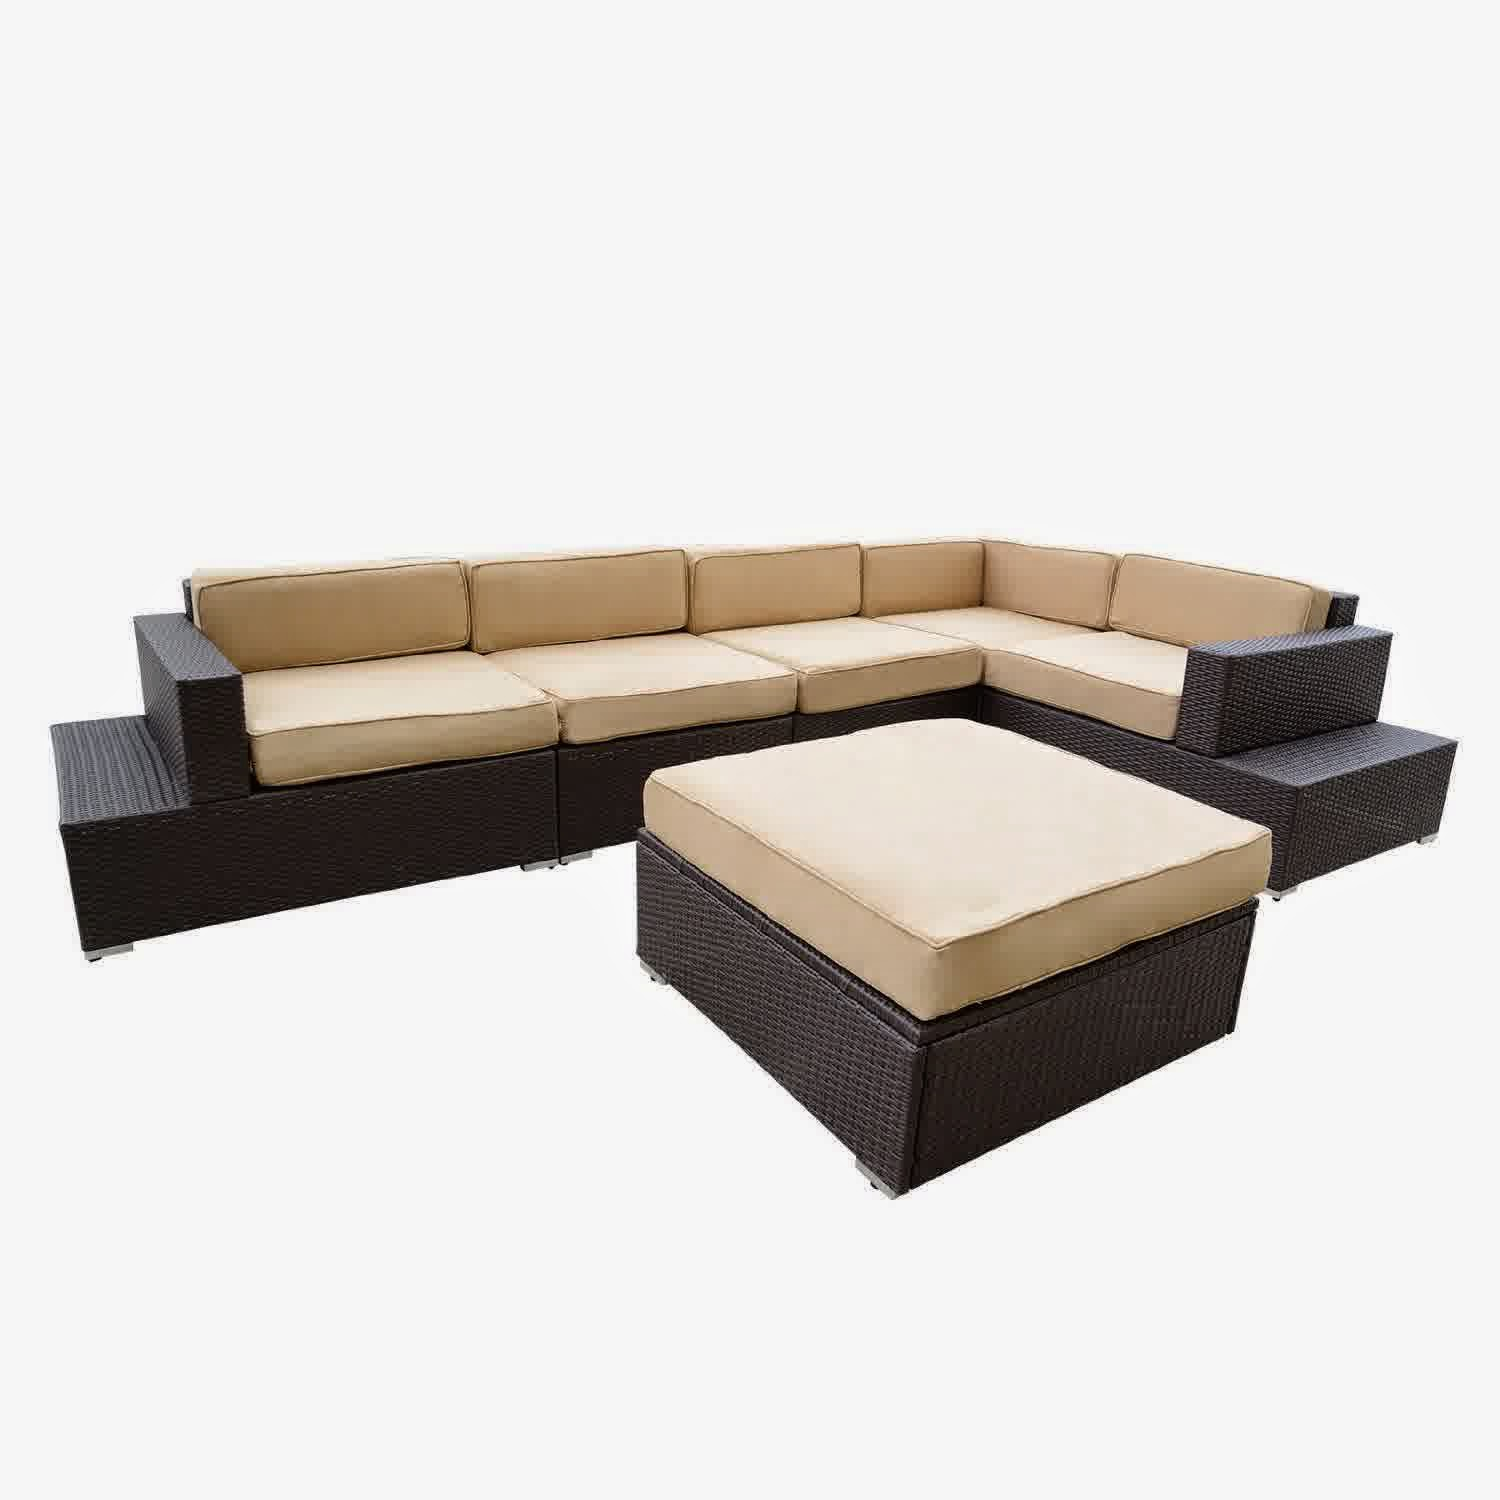 Big sale discount 50 outdoor patio rattan sofa wicker for Sofa set for sale cheap